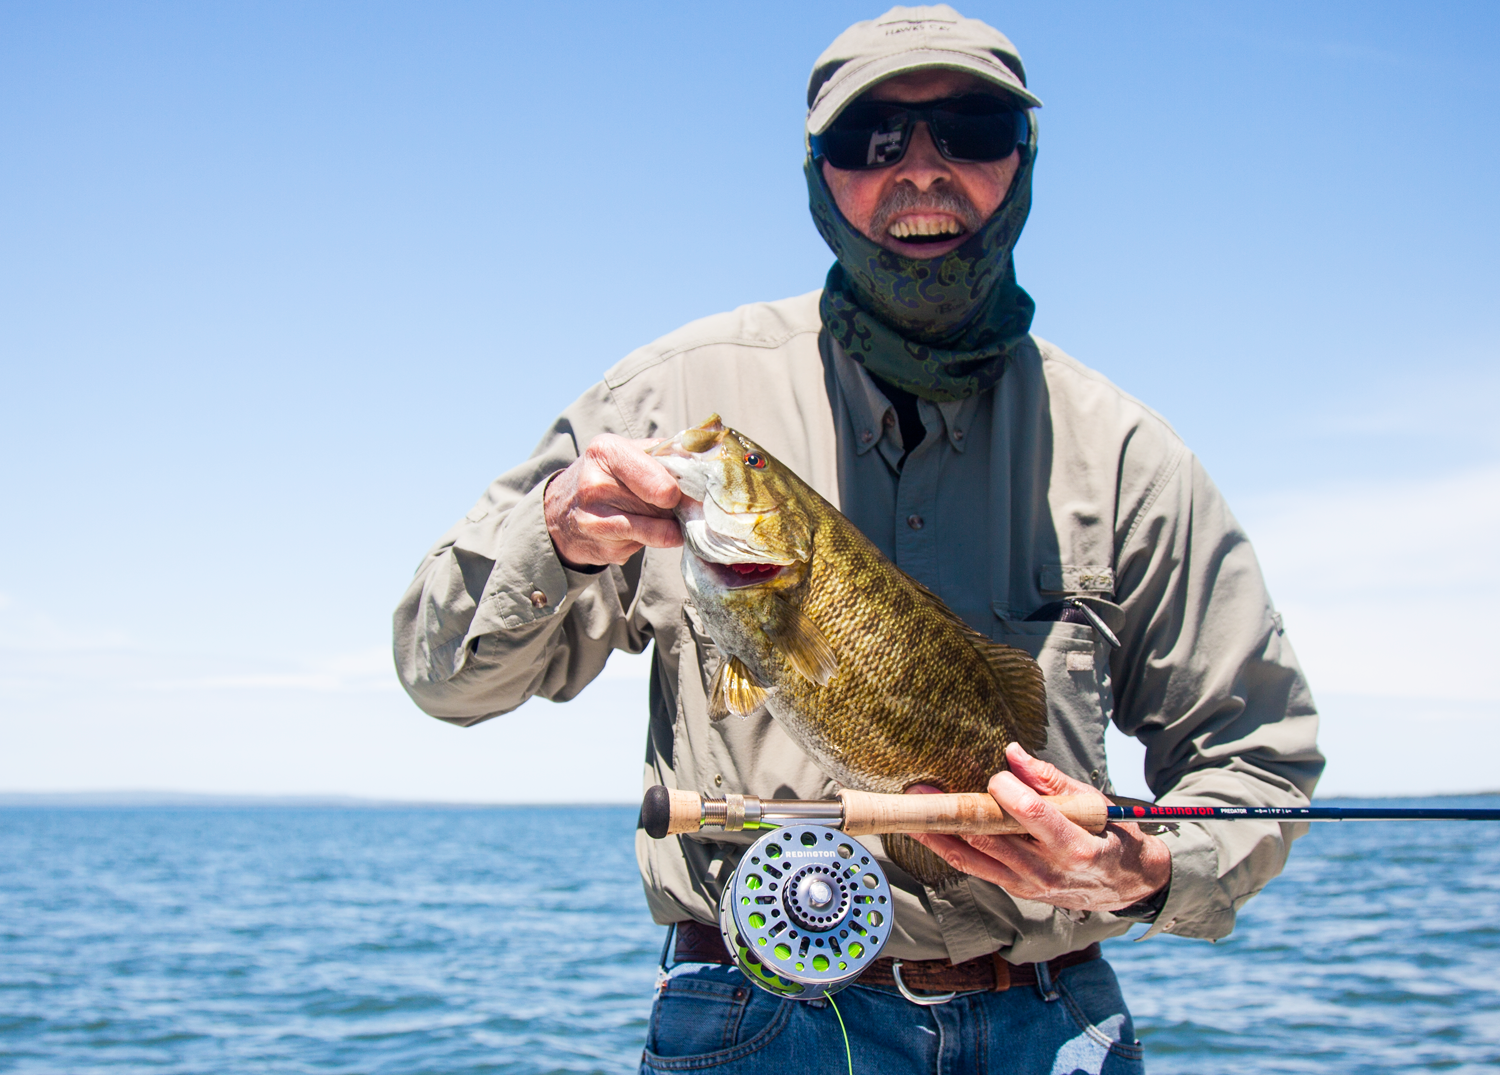 Jim from Duluth hit a good stretch of fish the other day on the fly. We had a little topwater action in the morning and as the sun got high we sight fished out in the deeper water. RIO's Outbound Short line with intermediate head got the job done.